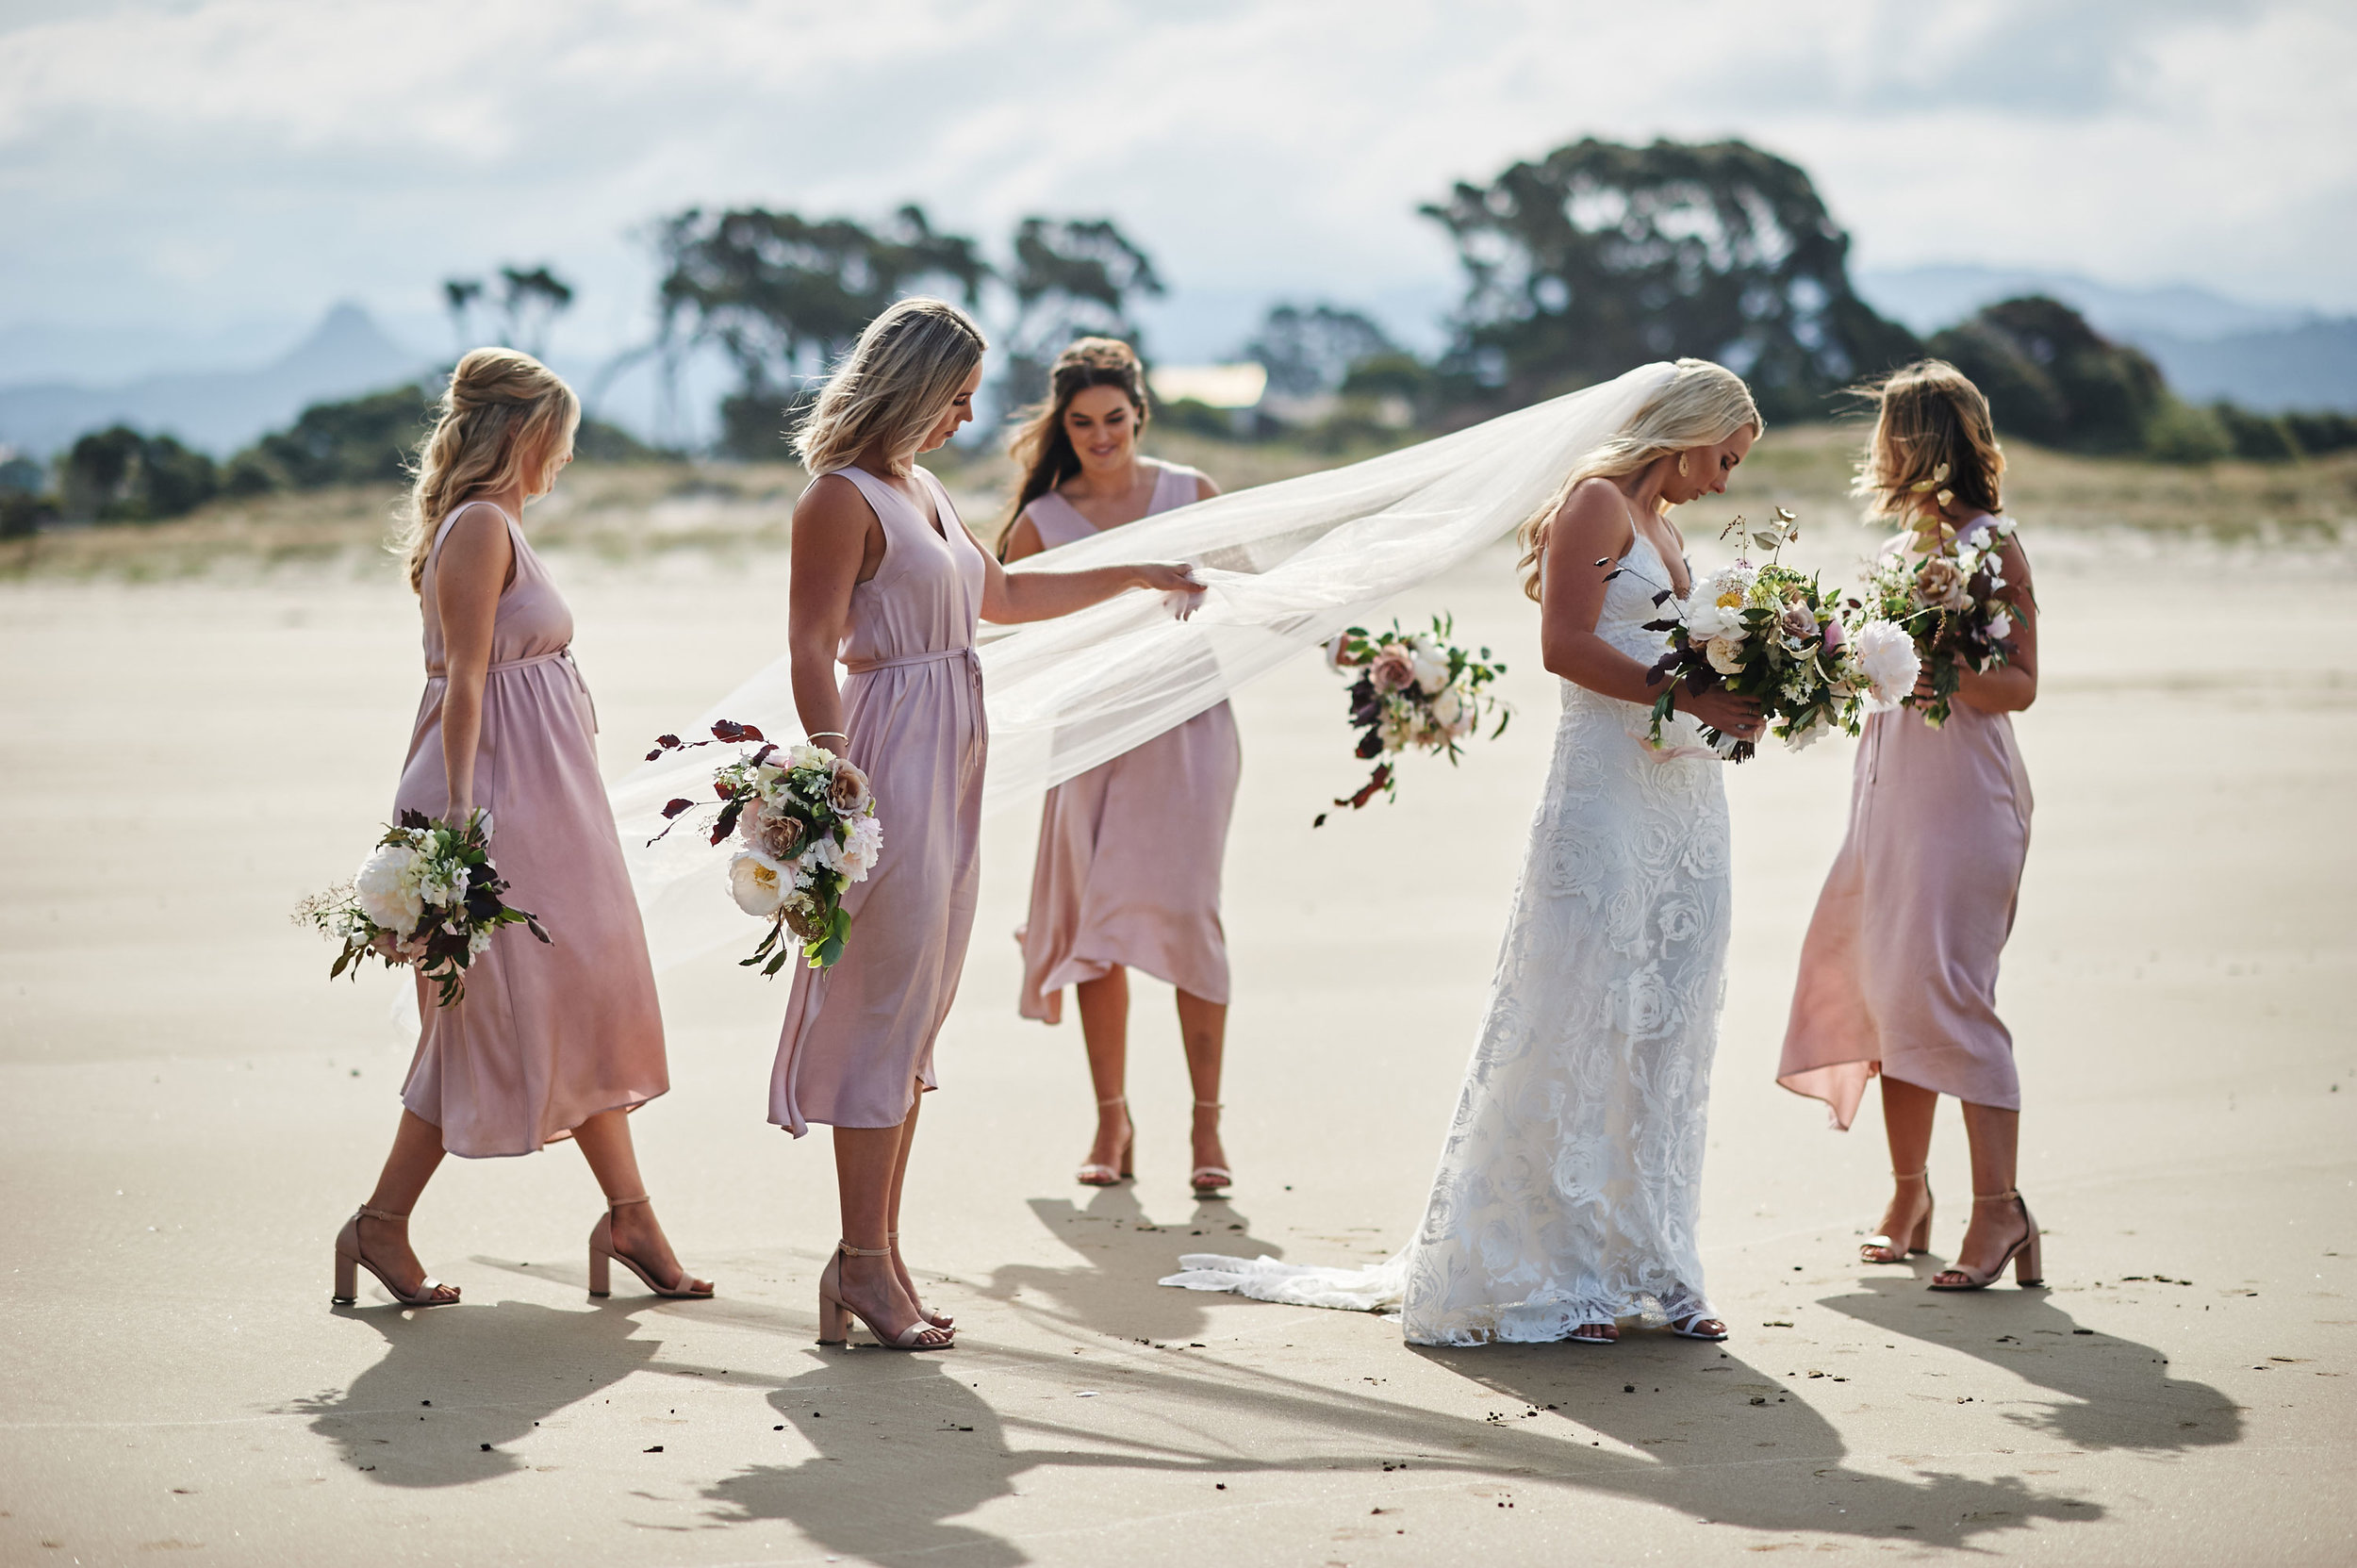 bride-and-her-bridesmaids-on-her-wedding-day.jpg